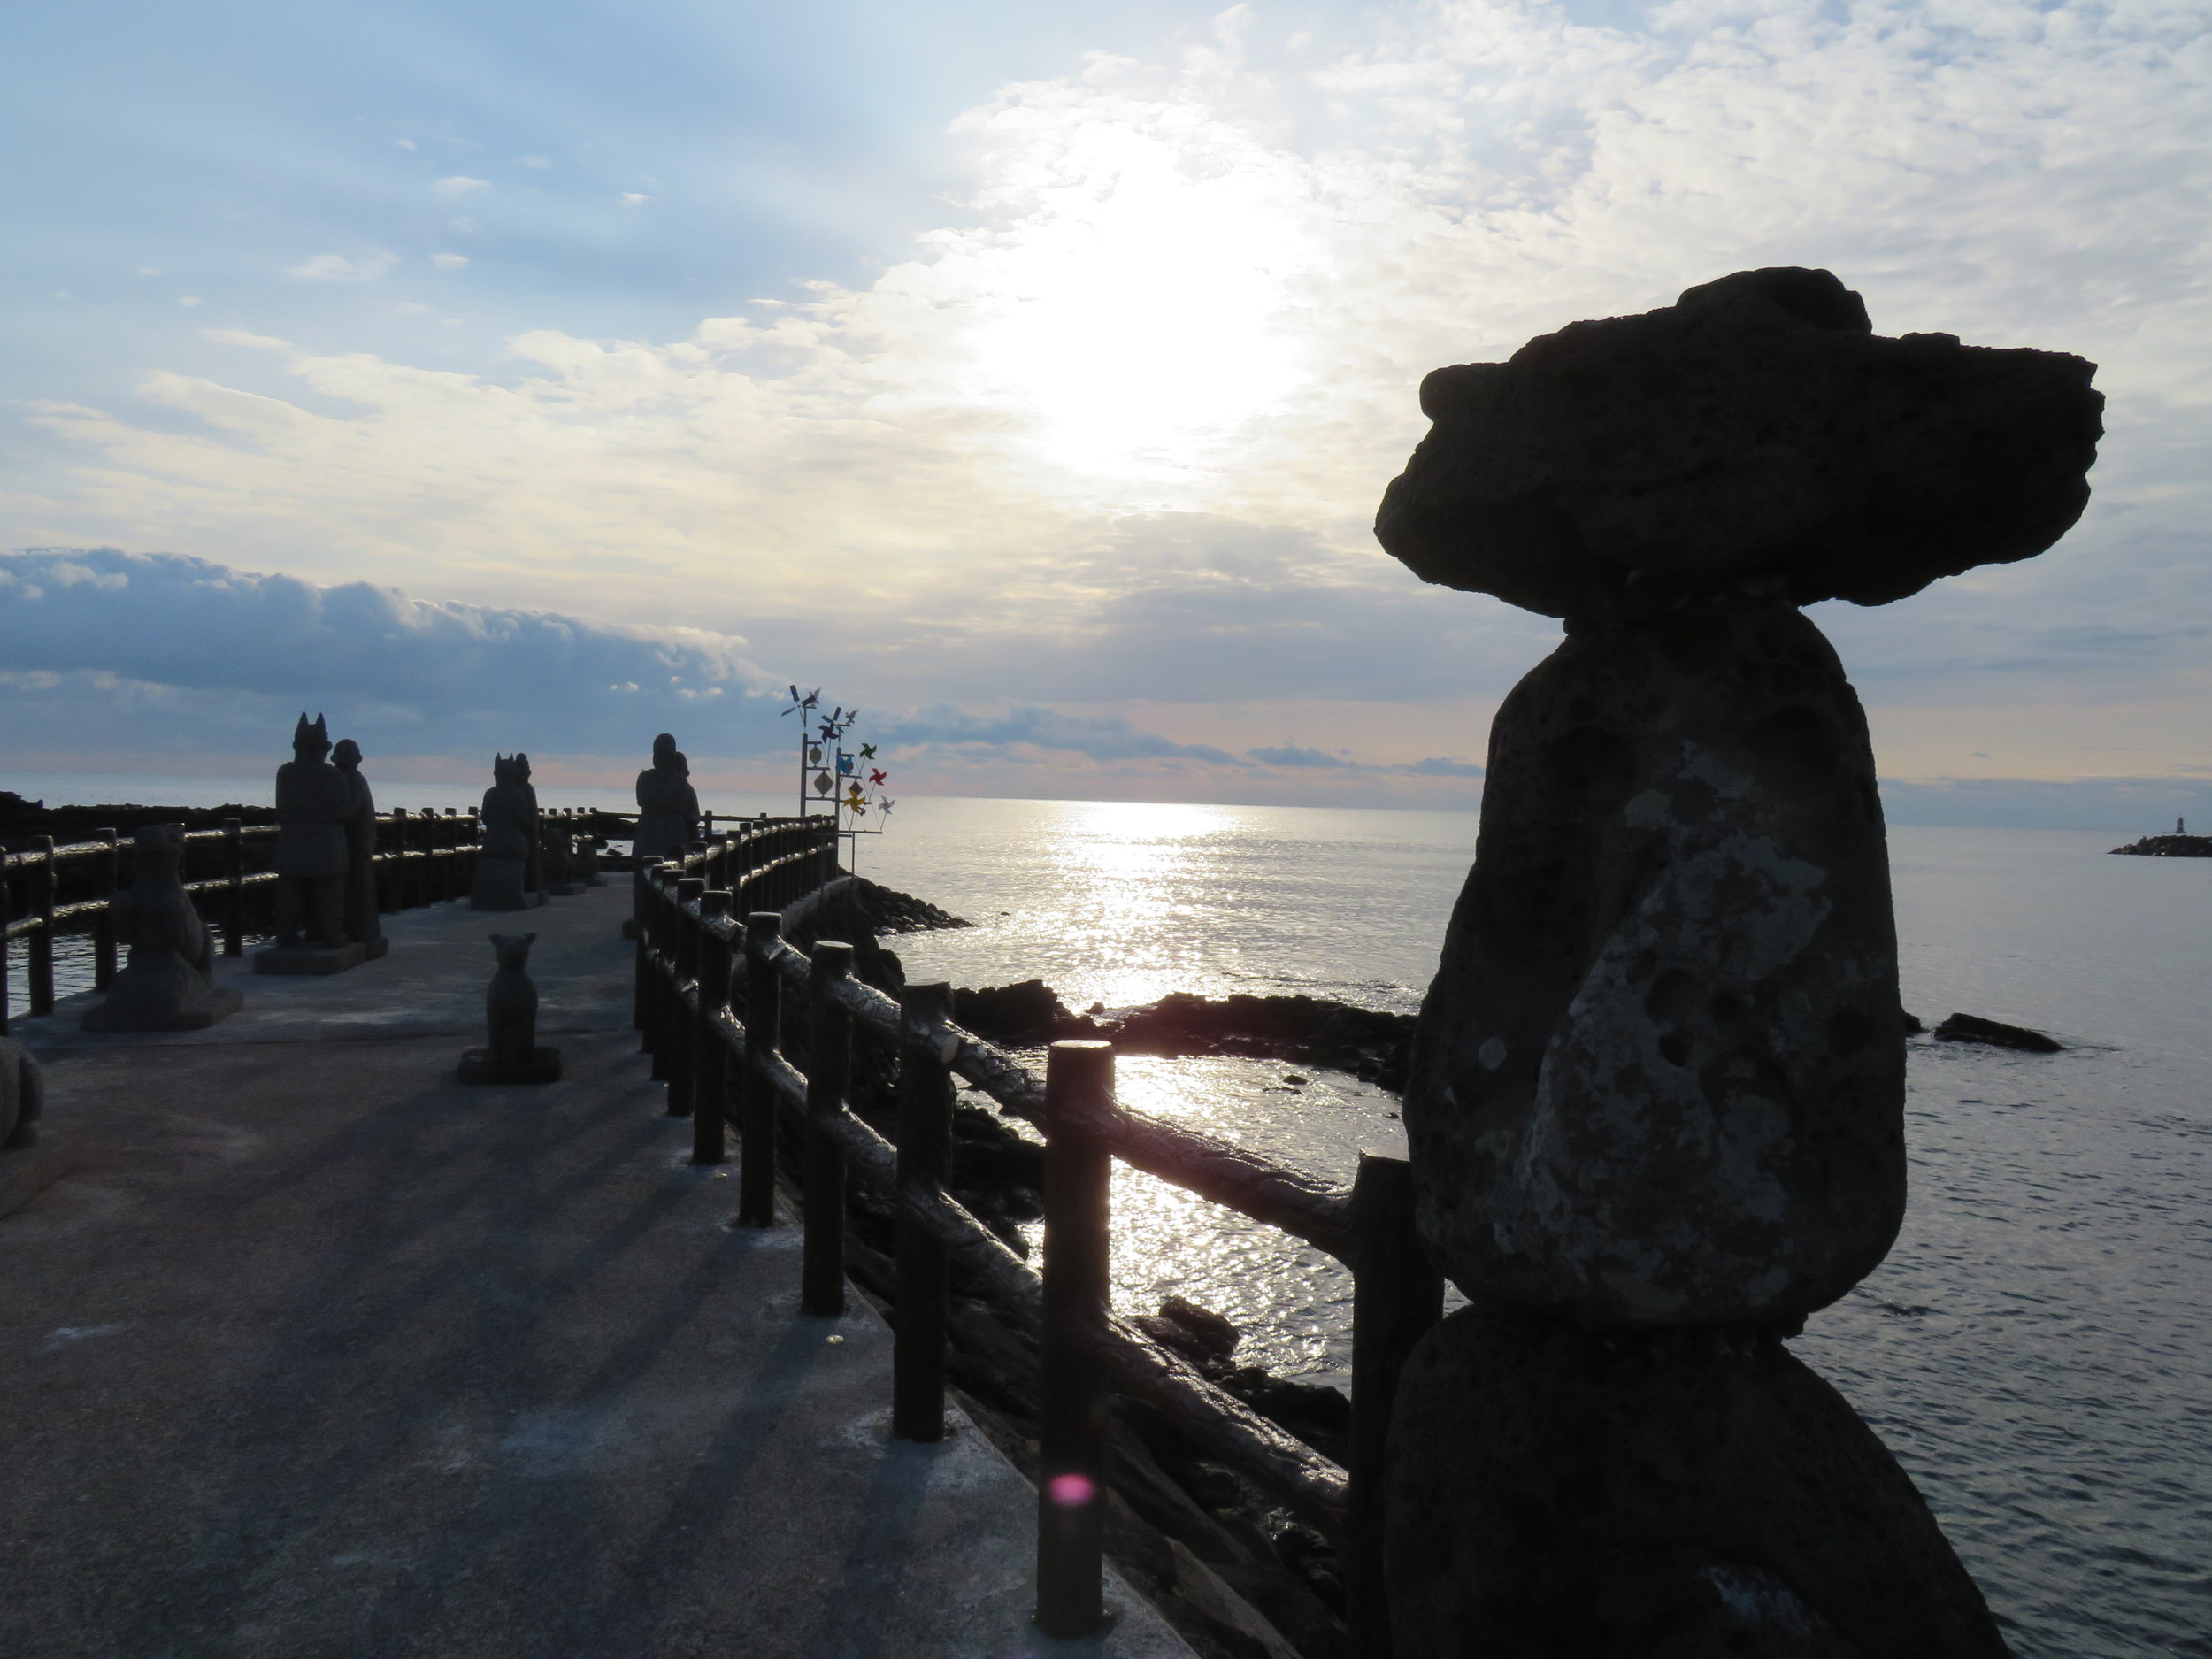 Sculptures by the sea at Onpyeong